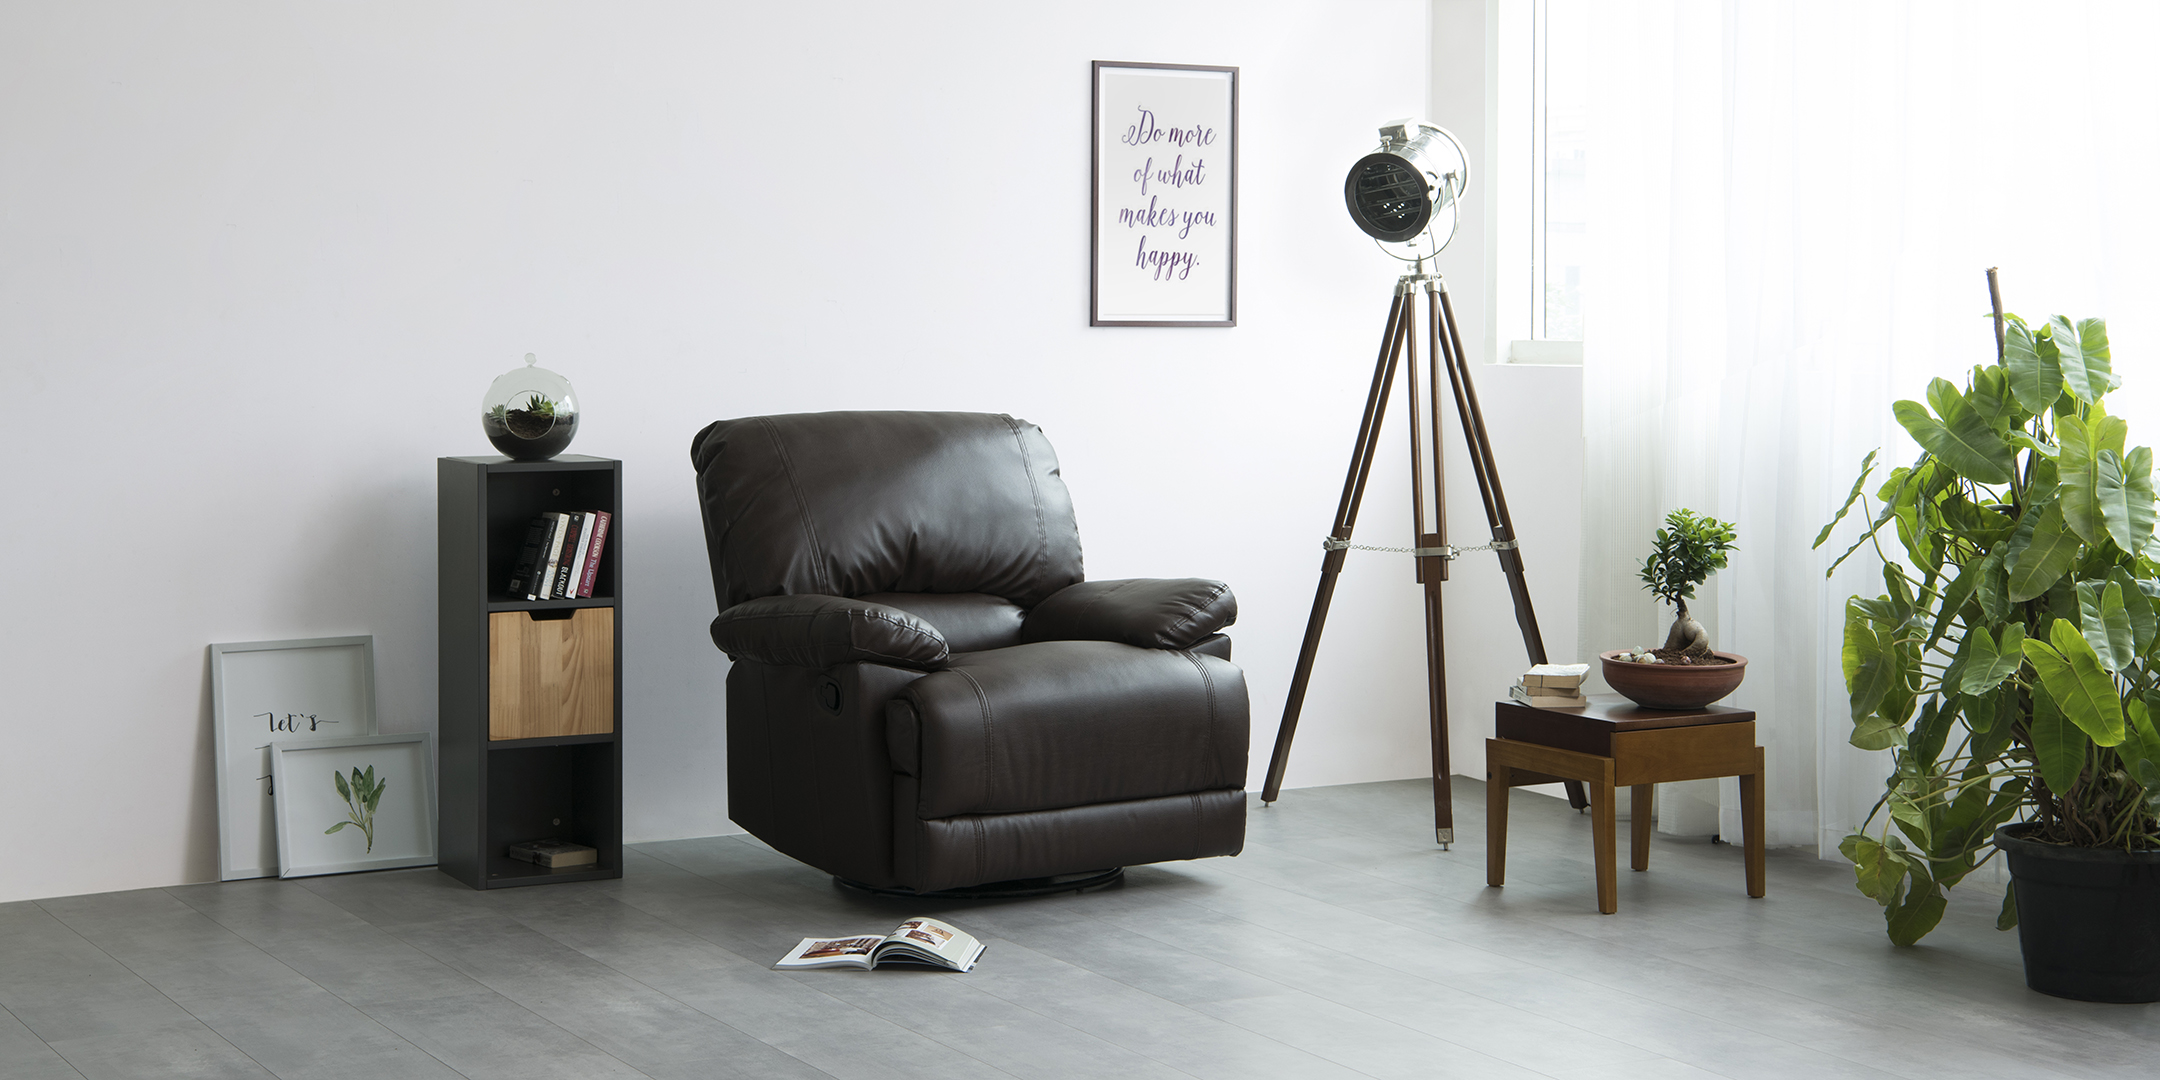 Must have furniture